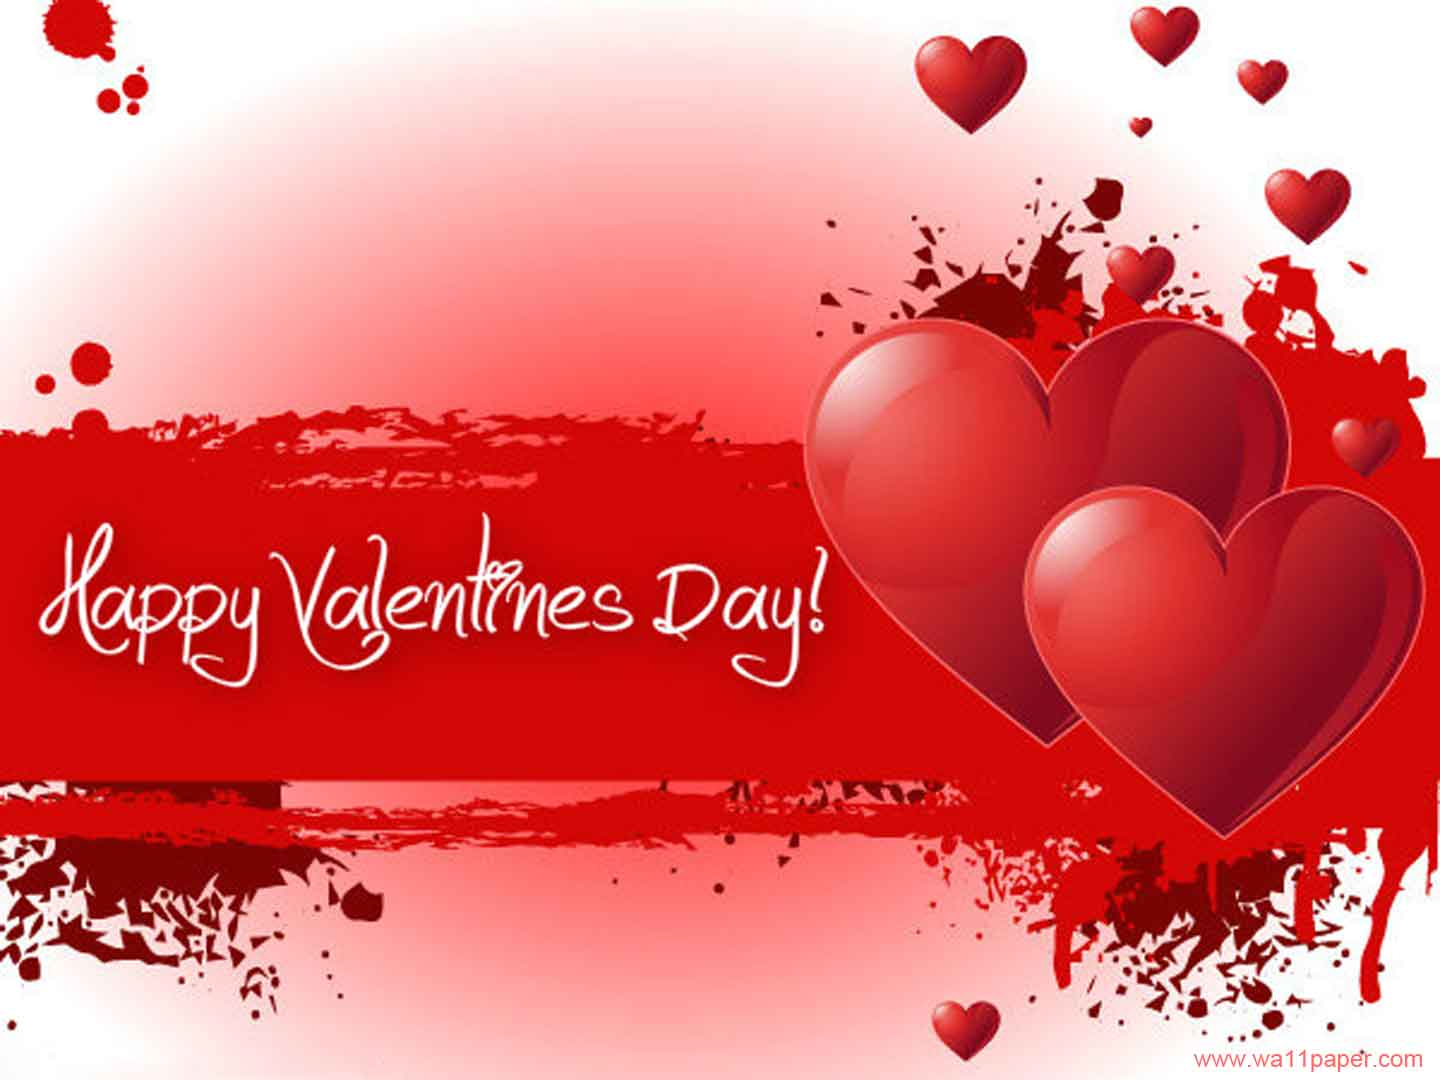 happy valentine's day poems